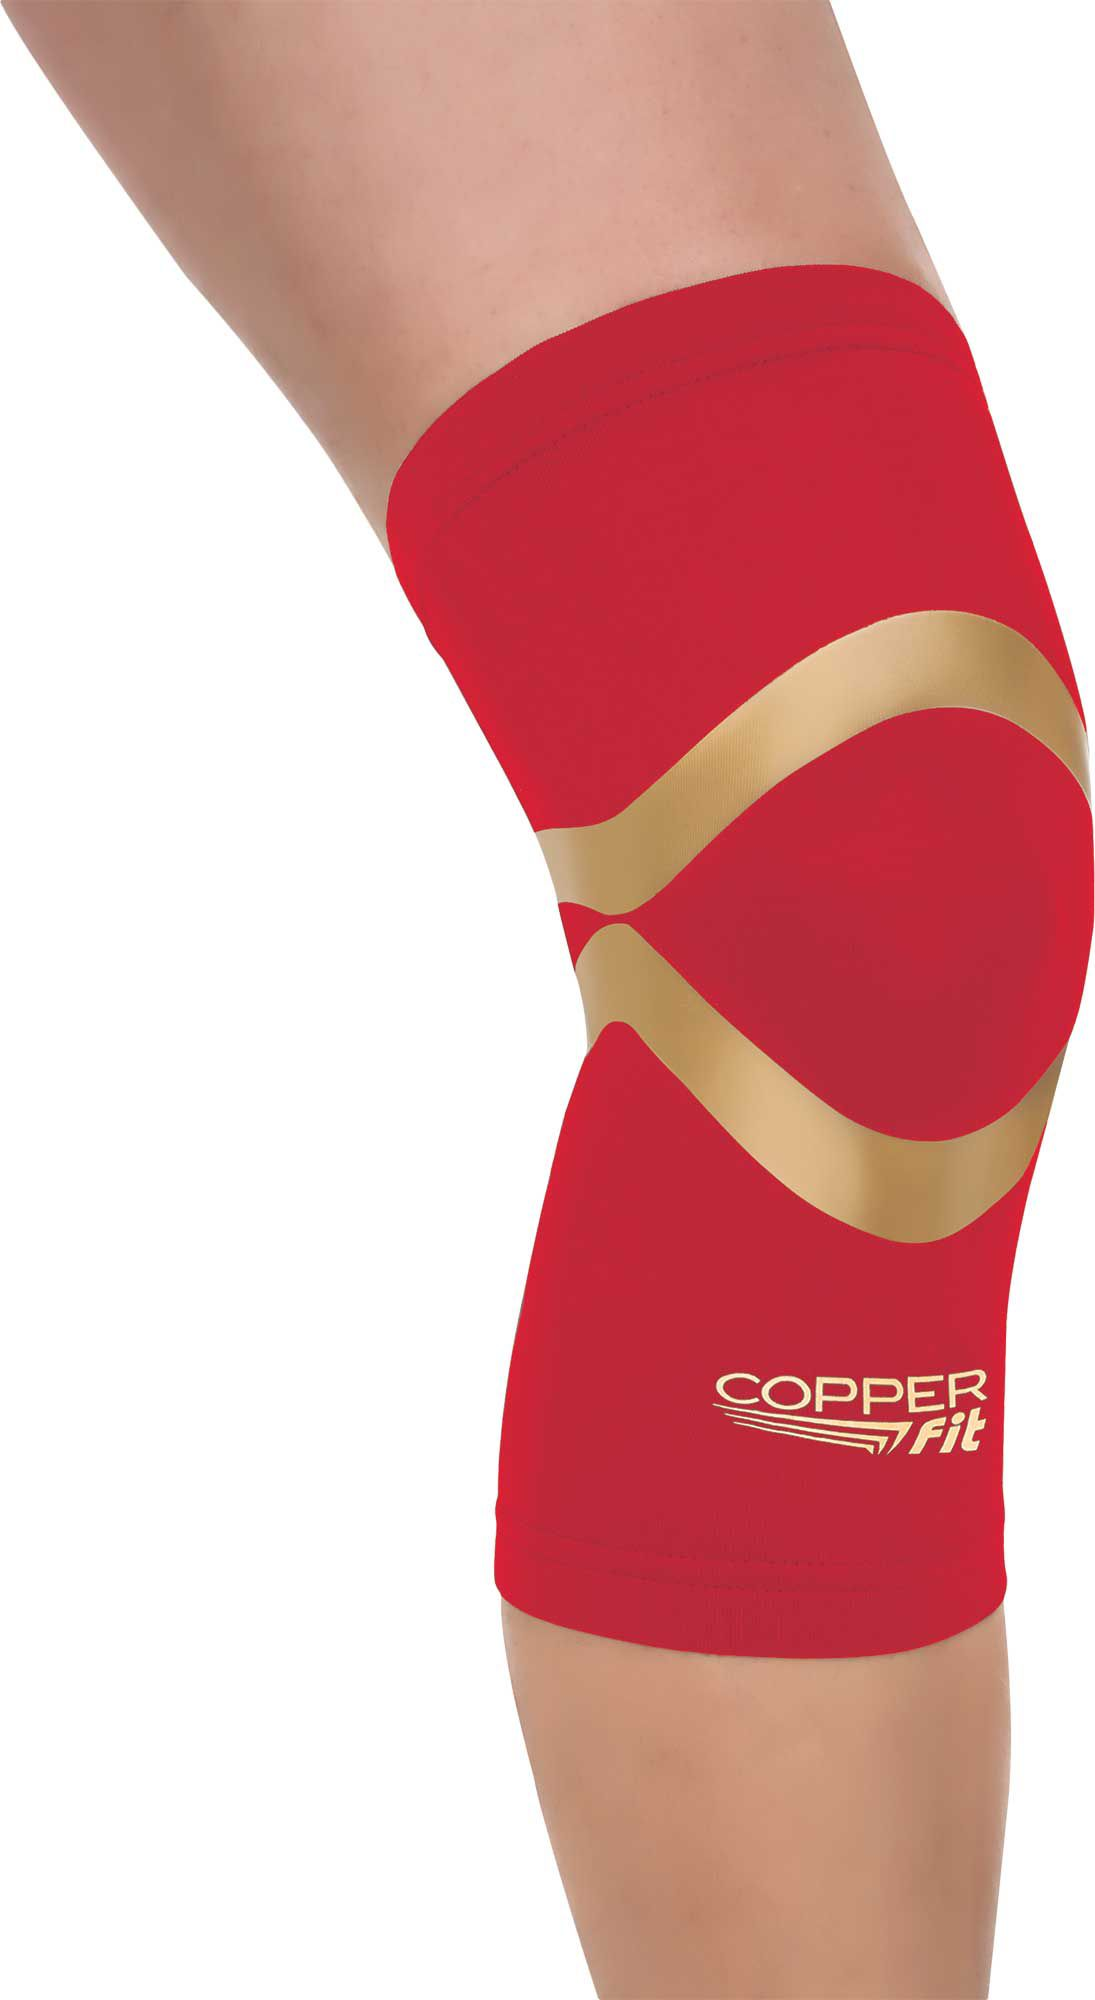 Stores that sell tommie copper - Product Image Copper Fit Pro Series Knee Sleeve